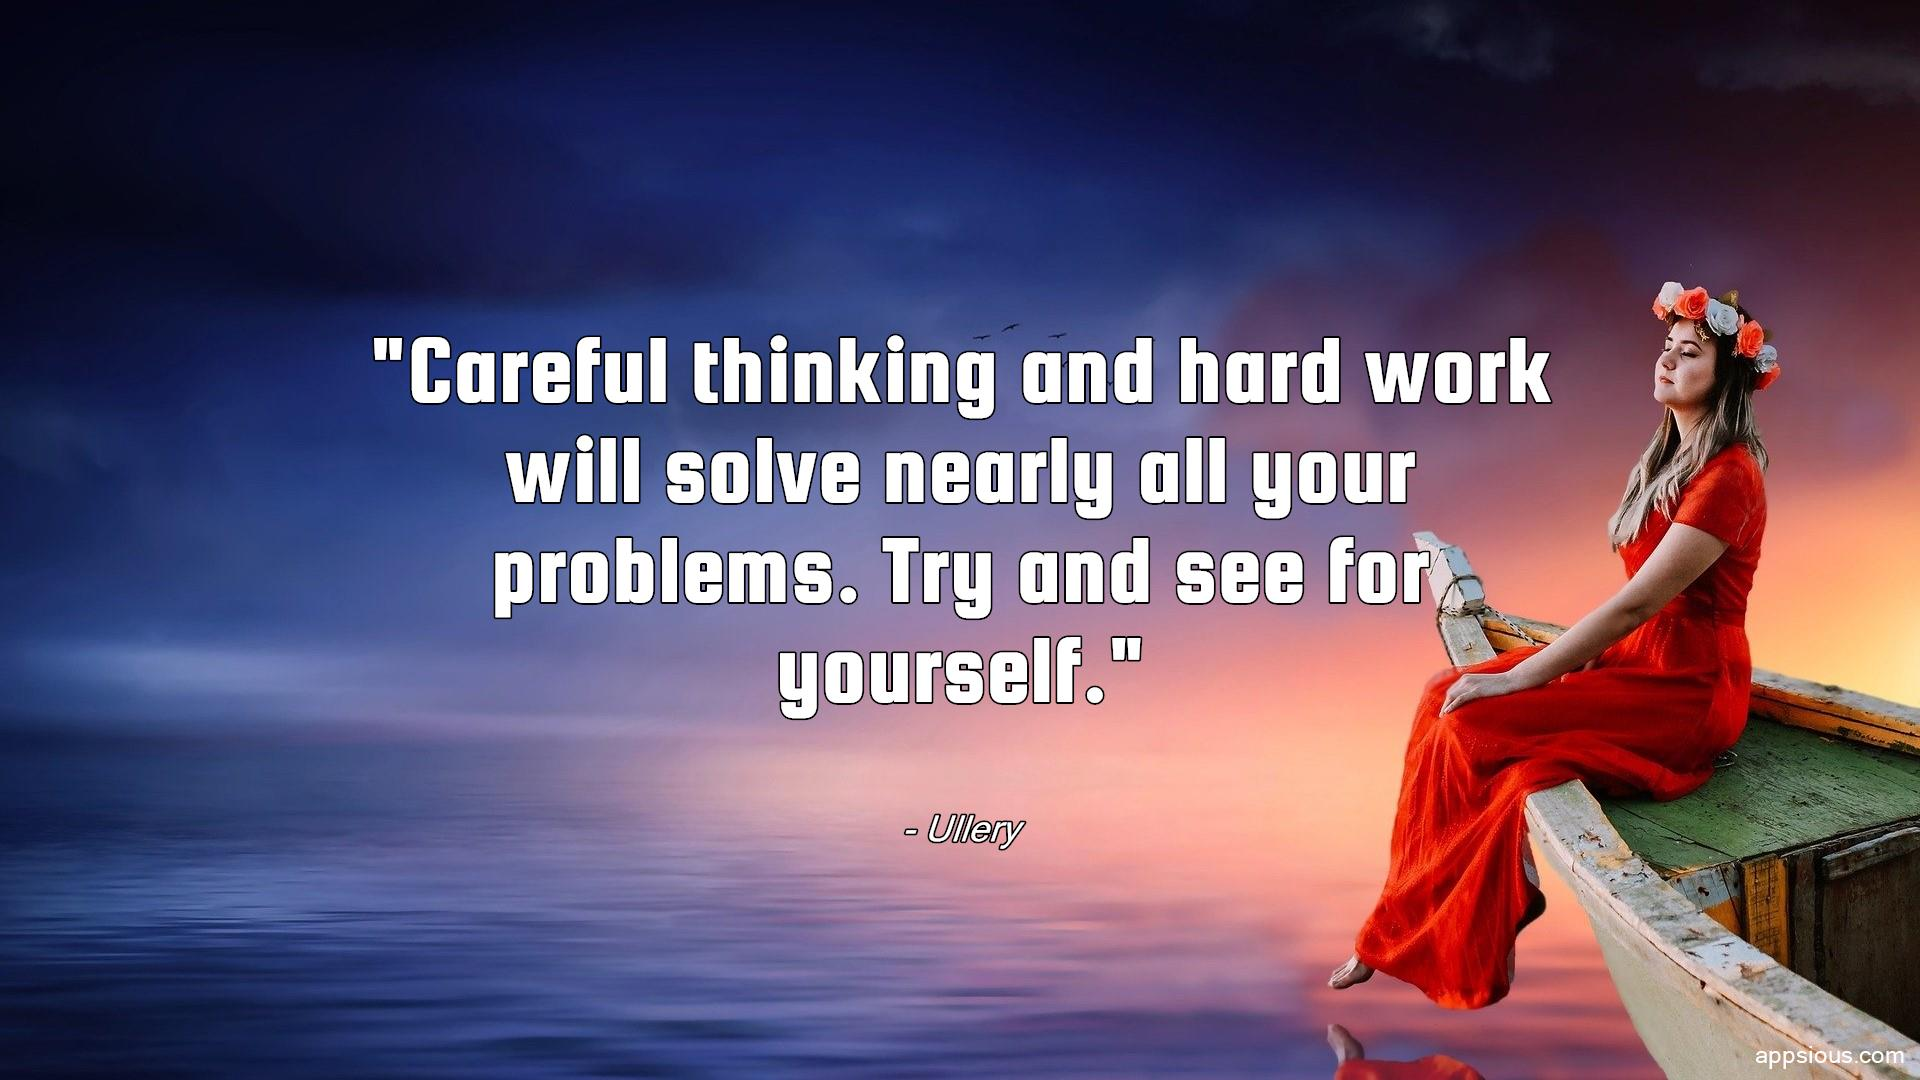 Careful thinking and hard work will solve nearly all your problems. Try and see for yourself.